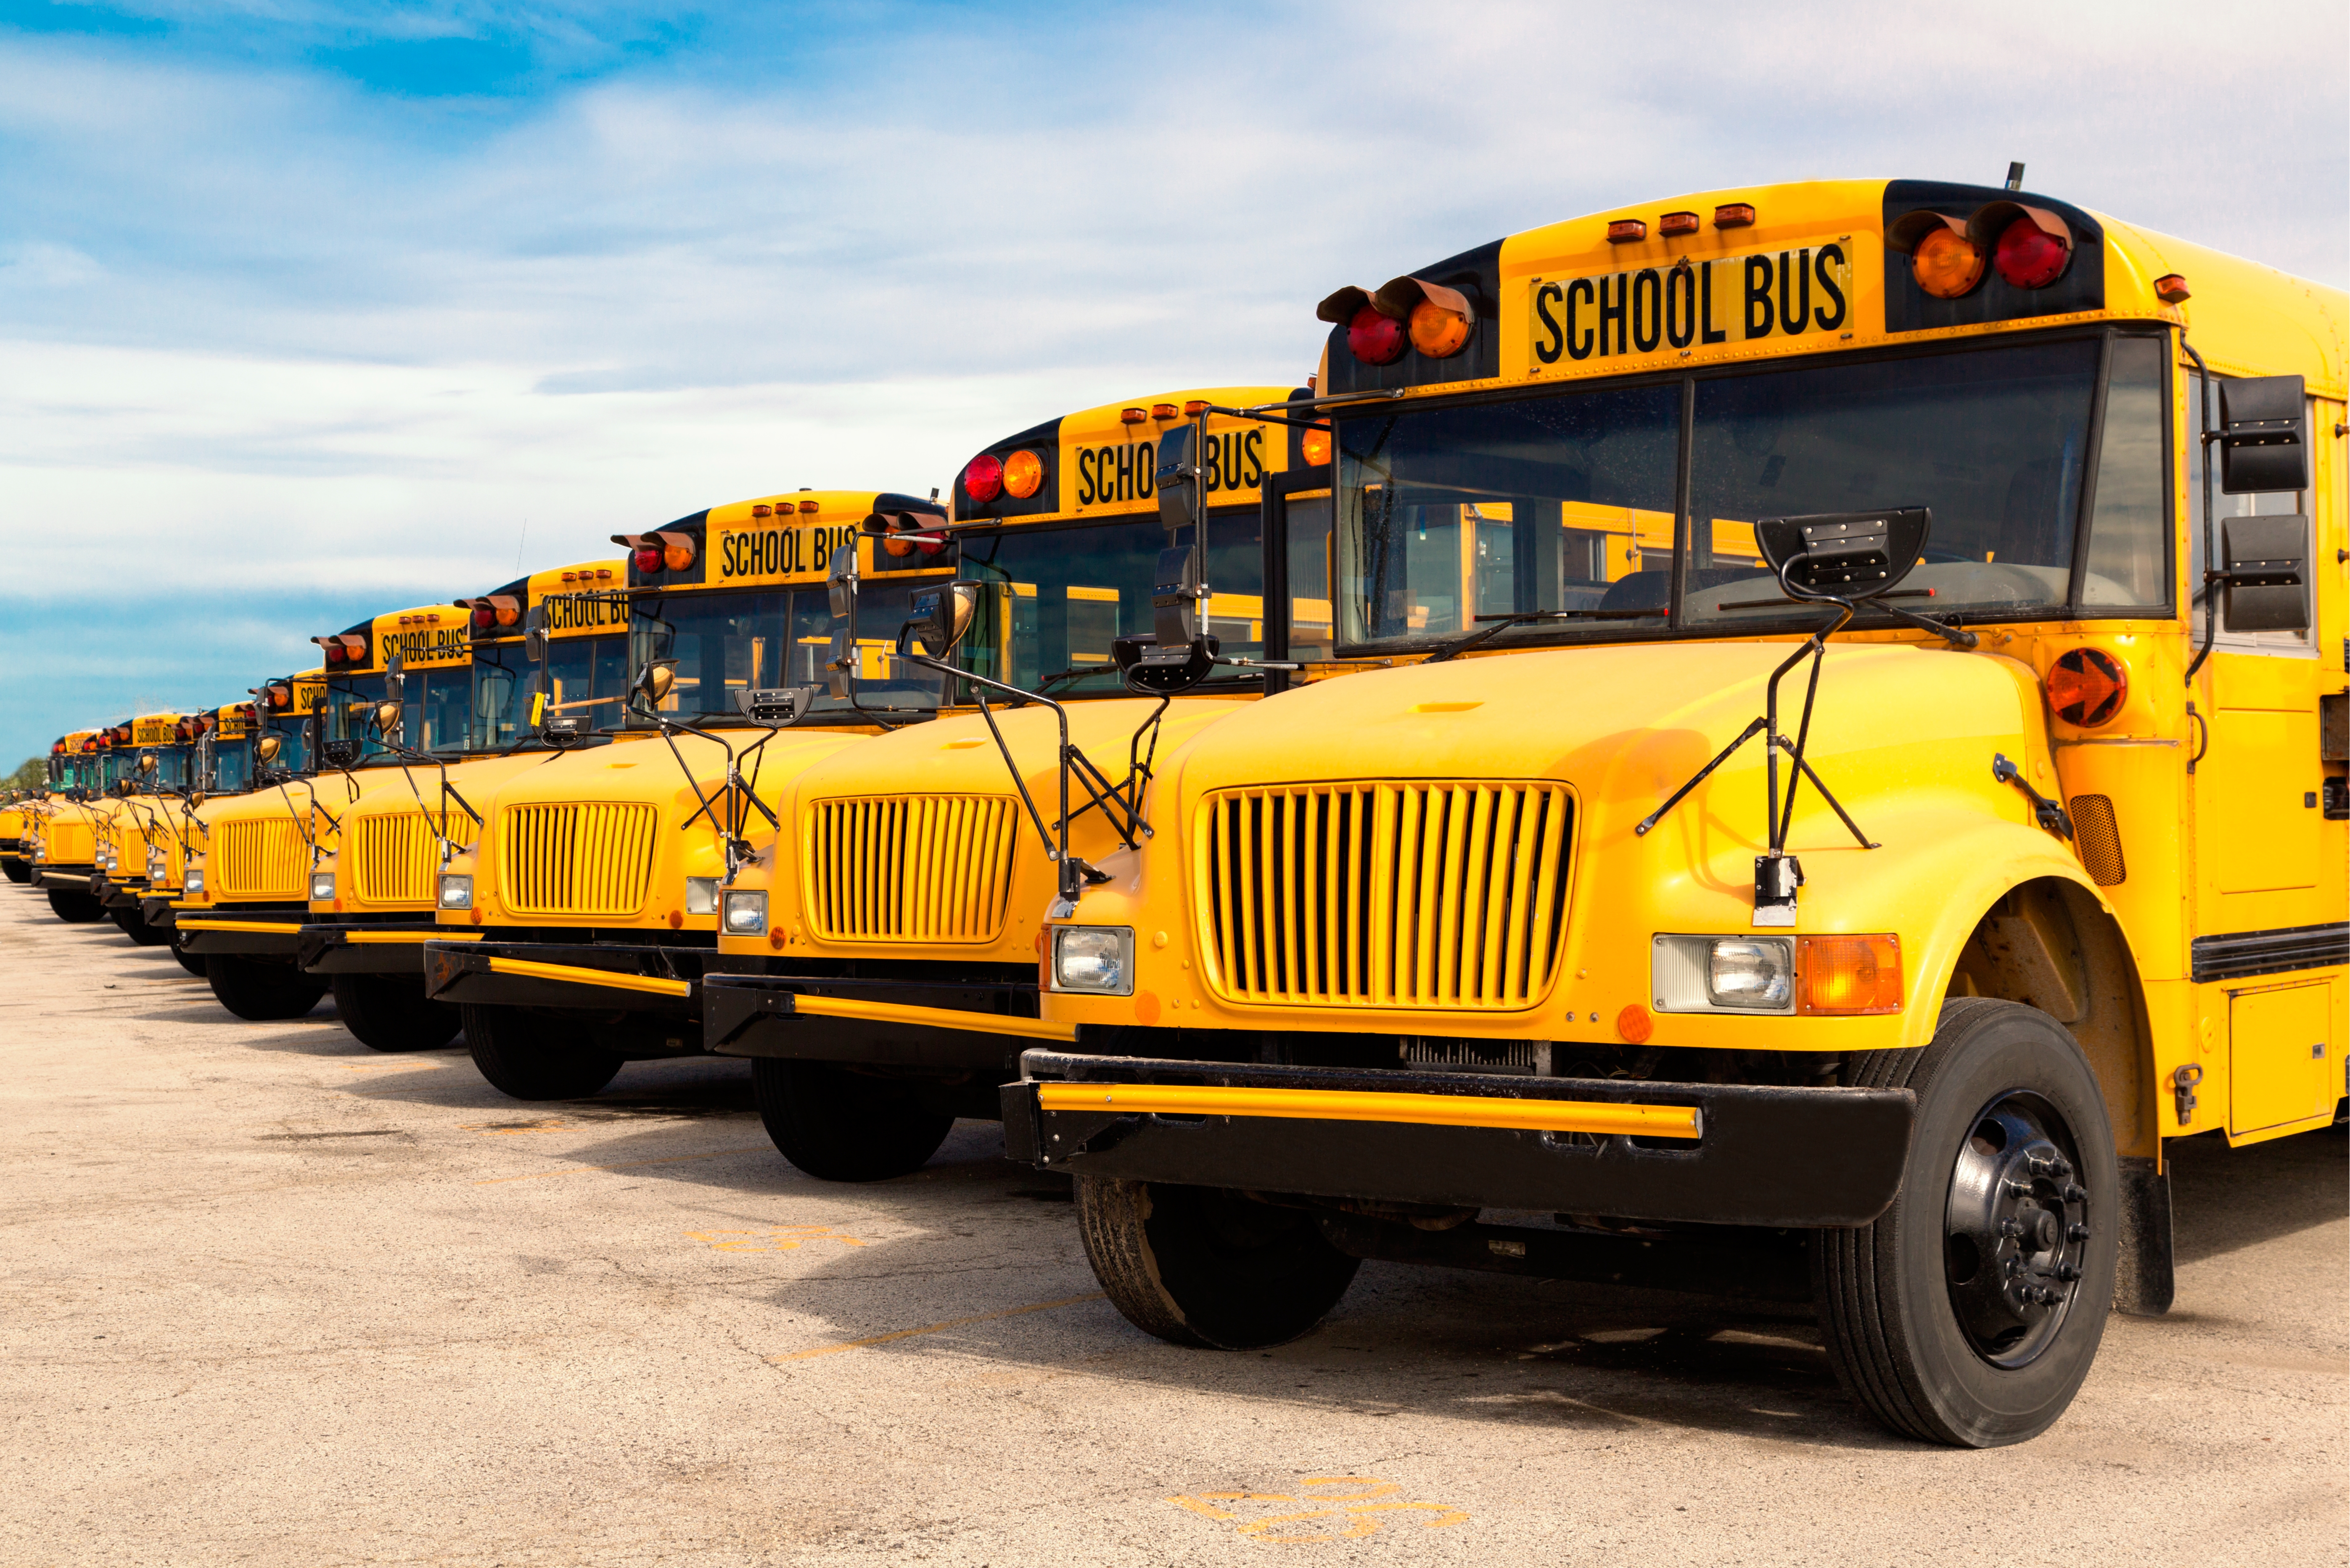 School buses lined up and parked in a row